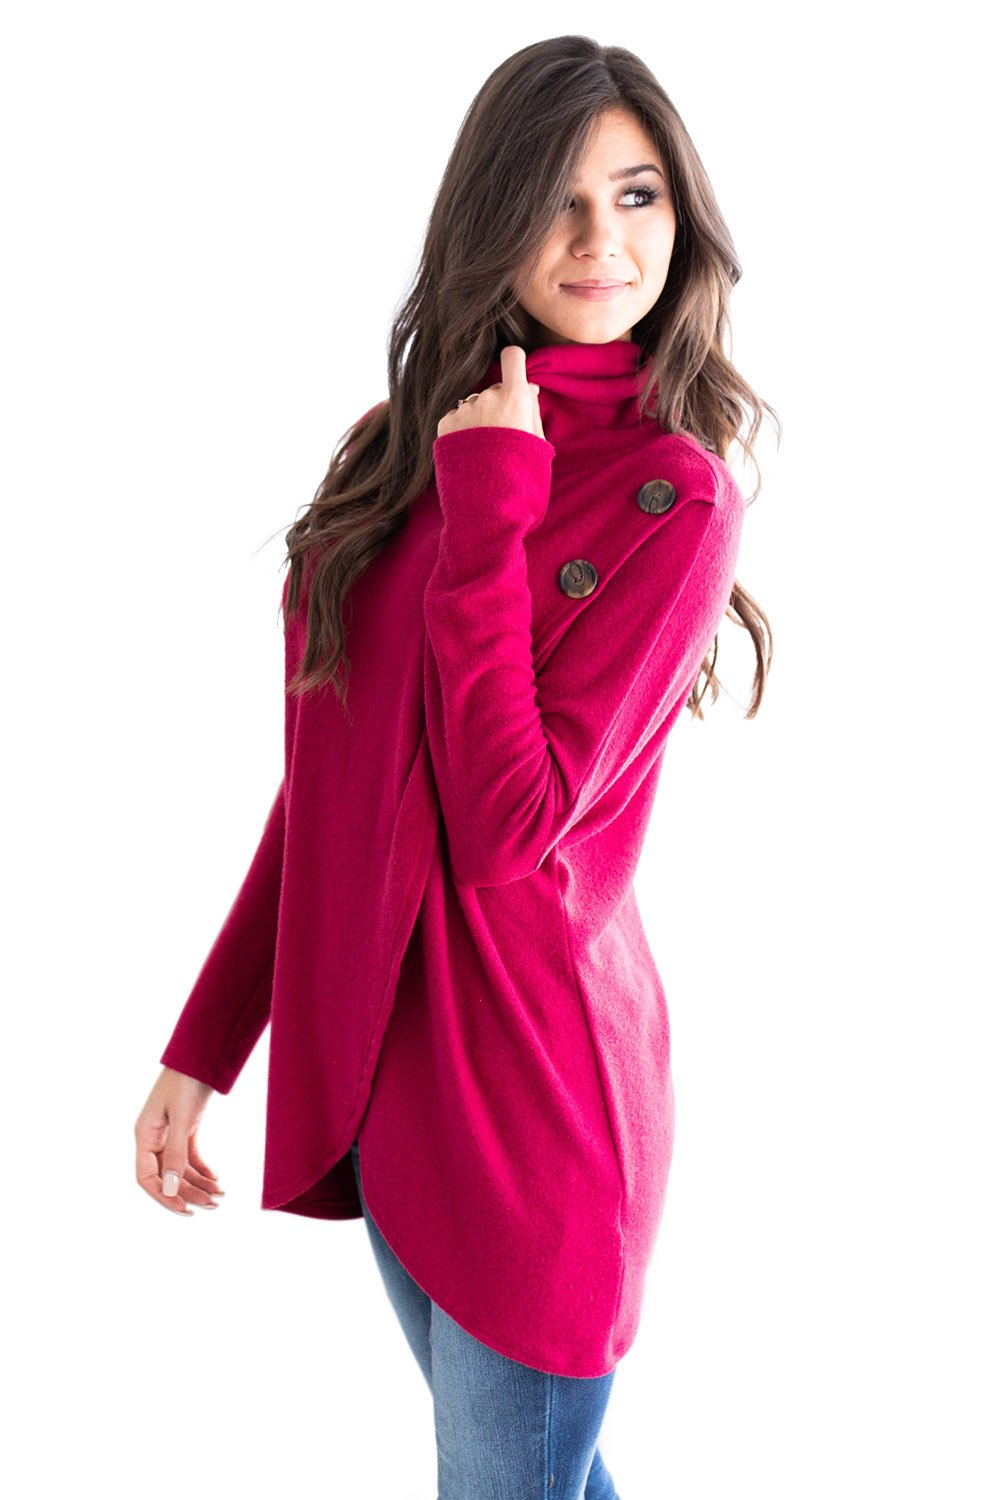 Rosy Button Cowl Neck Overlap Tunic Top-Tops, Tunic Tops-Azura Exchange